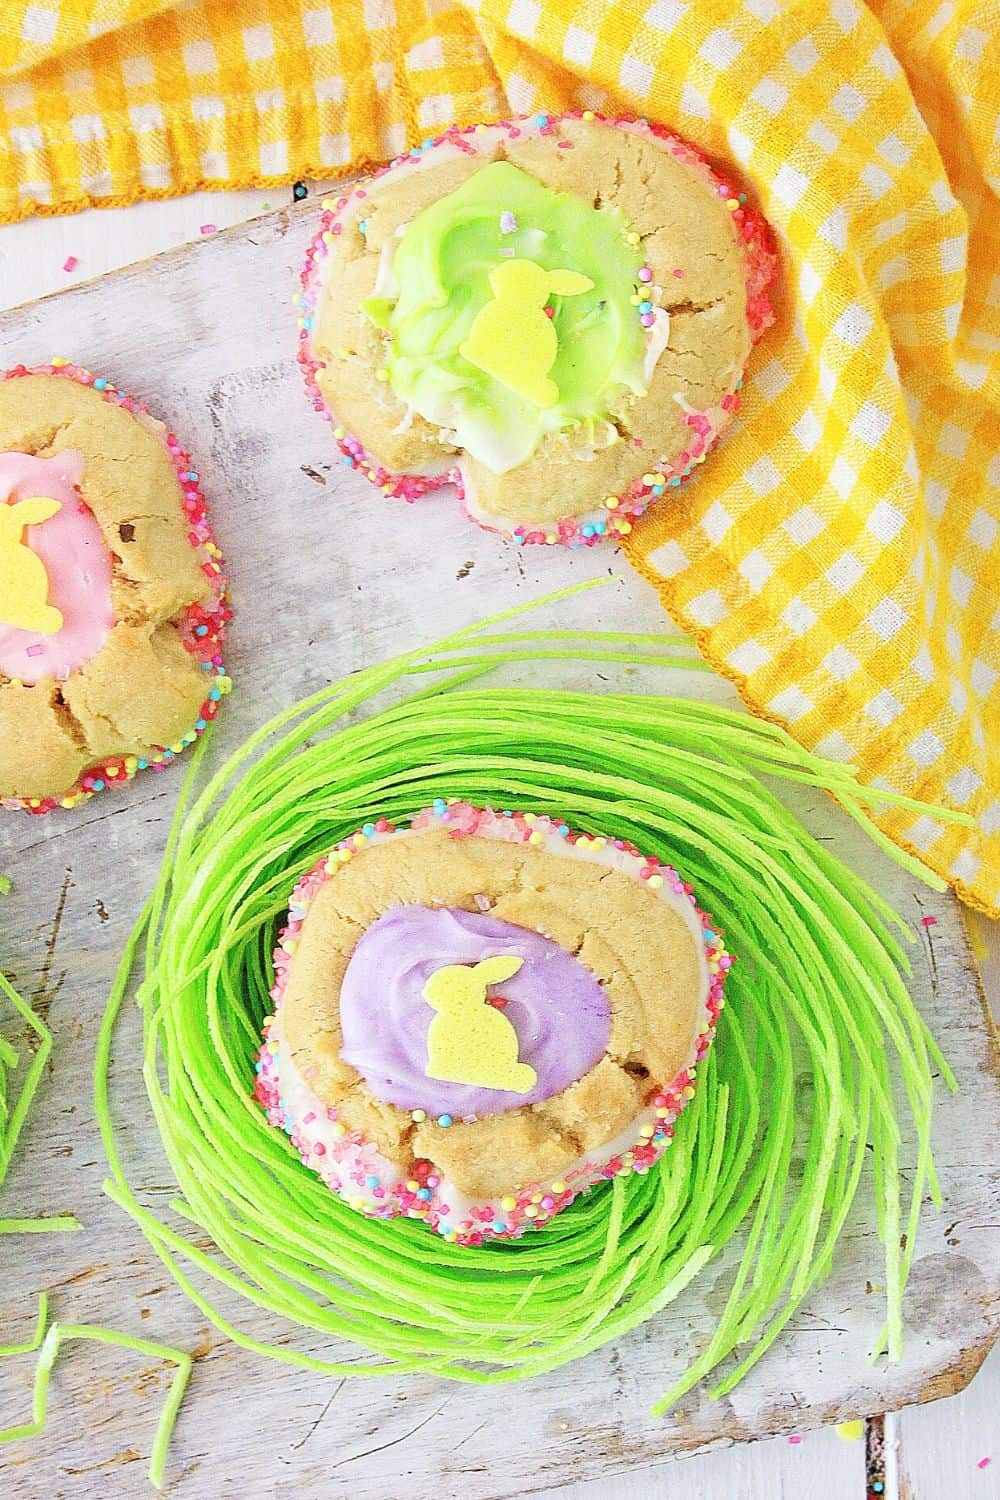 These homemade Easter Thumbprint Cookies are a sure sign of spring. Bake a batch of these easy colorful holiday cookies to share today. Everyone love thumbprint cookies!